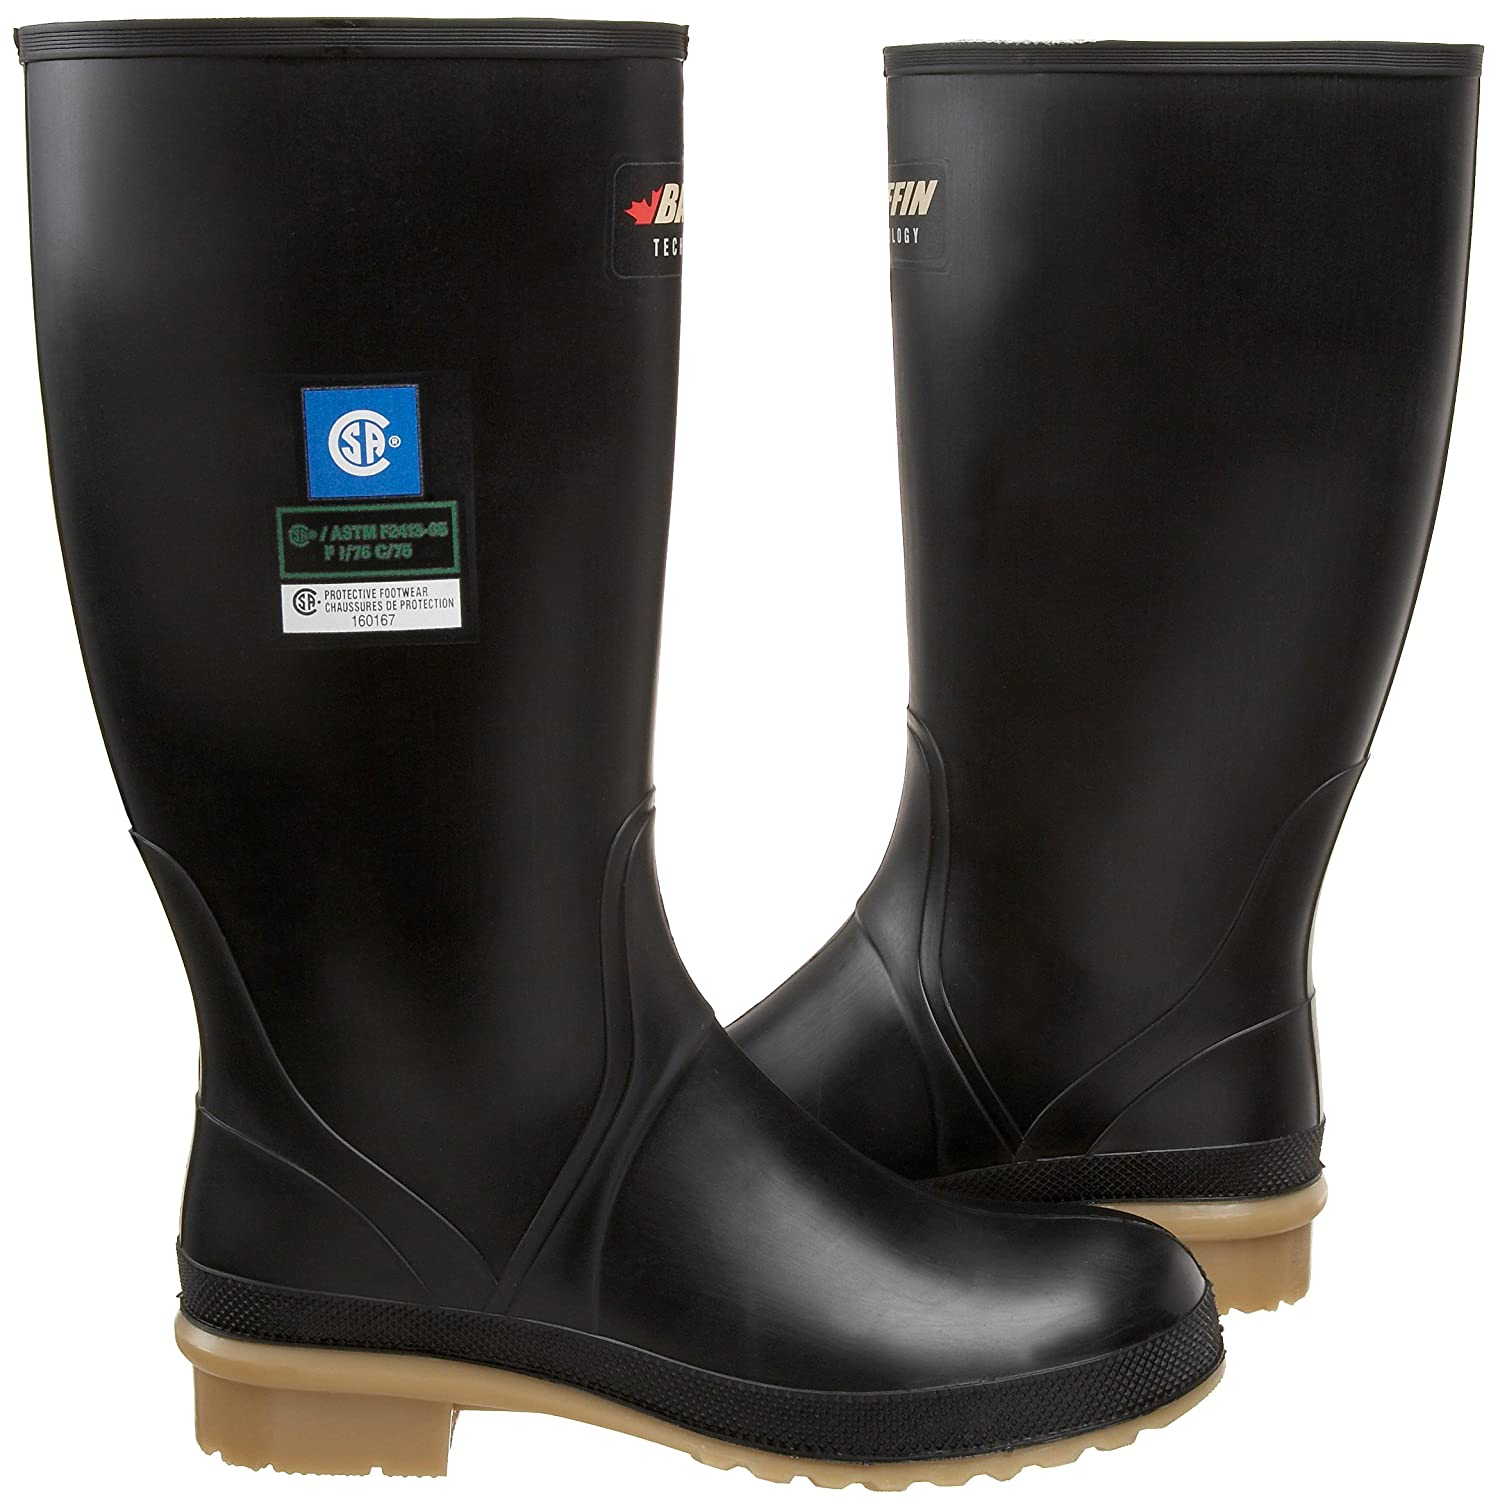 Baffin Women's Processor Canadian Made Industrial Rubber Boot B002BH4GQ4 5 B(M) US Black/Amber